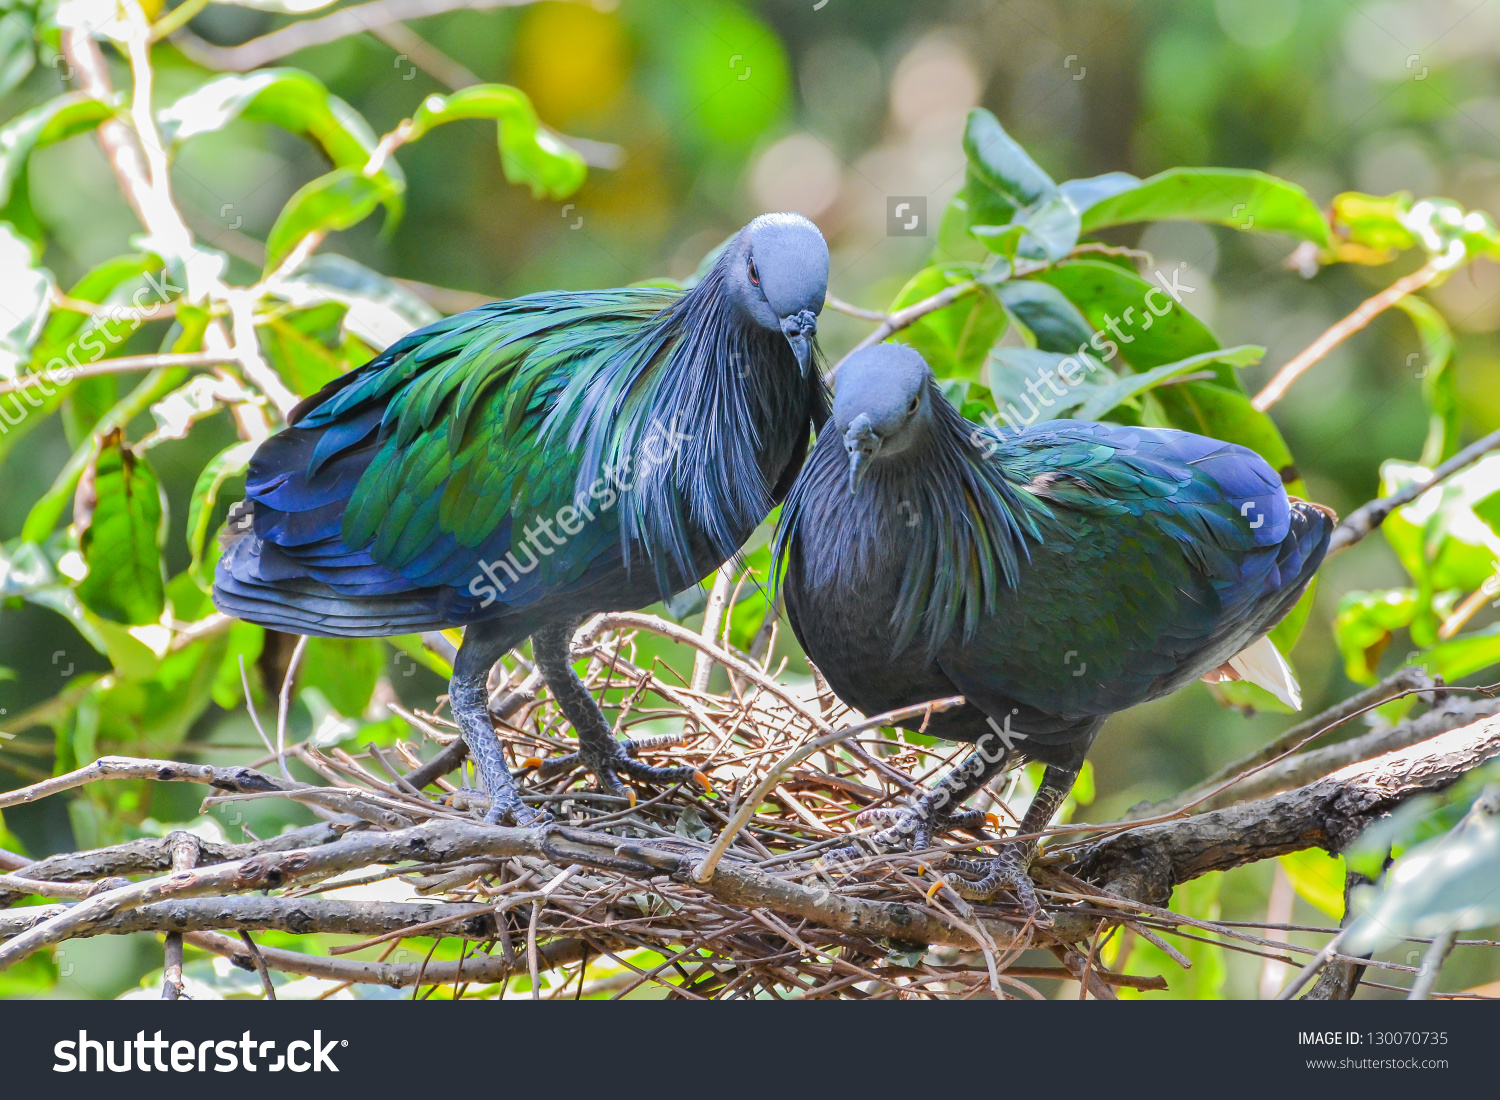 Nicobar Pigeon clipart #16, Download drawings